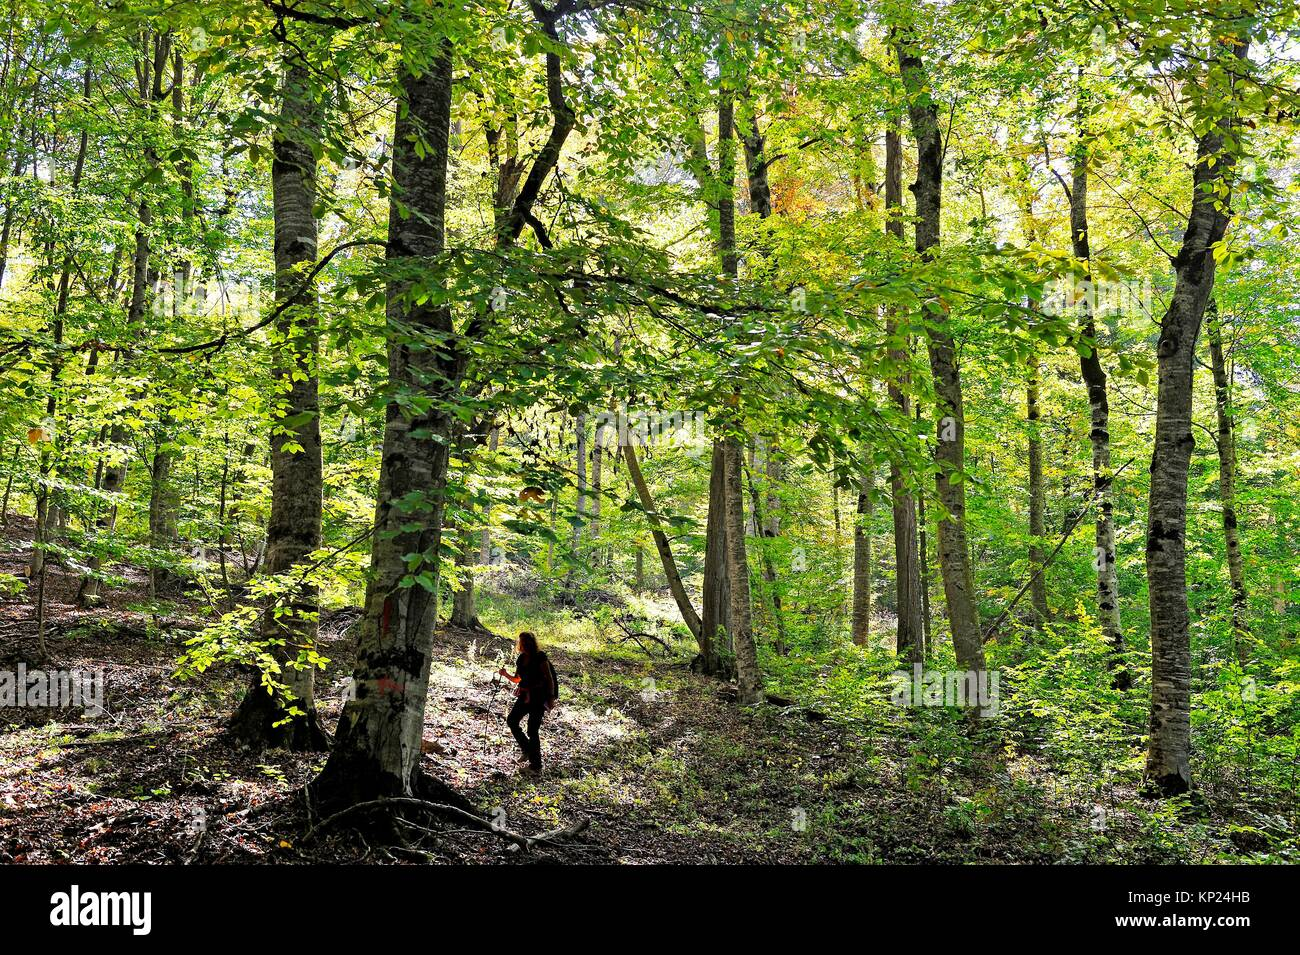 beech trees in the forest of the Dilijan National Park, Tavush region, Armenia, Eurasia. - Stock Image